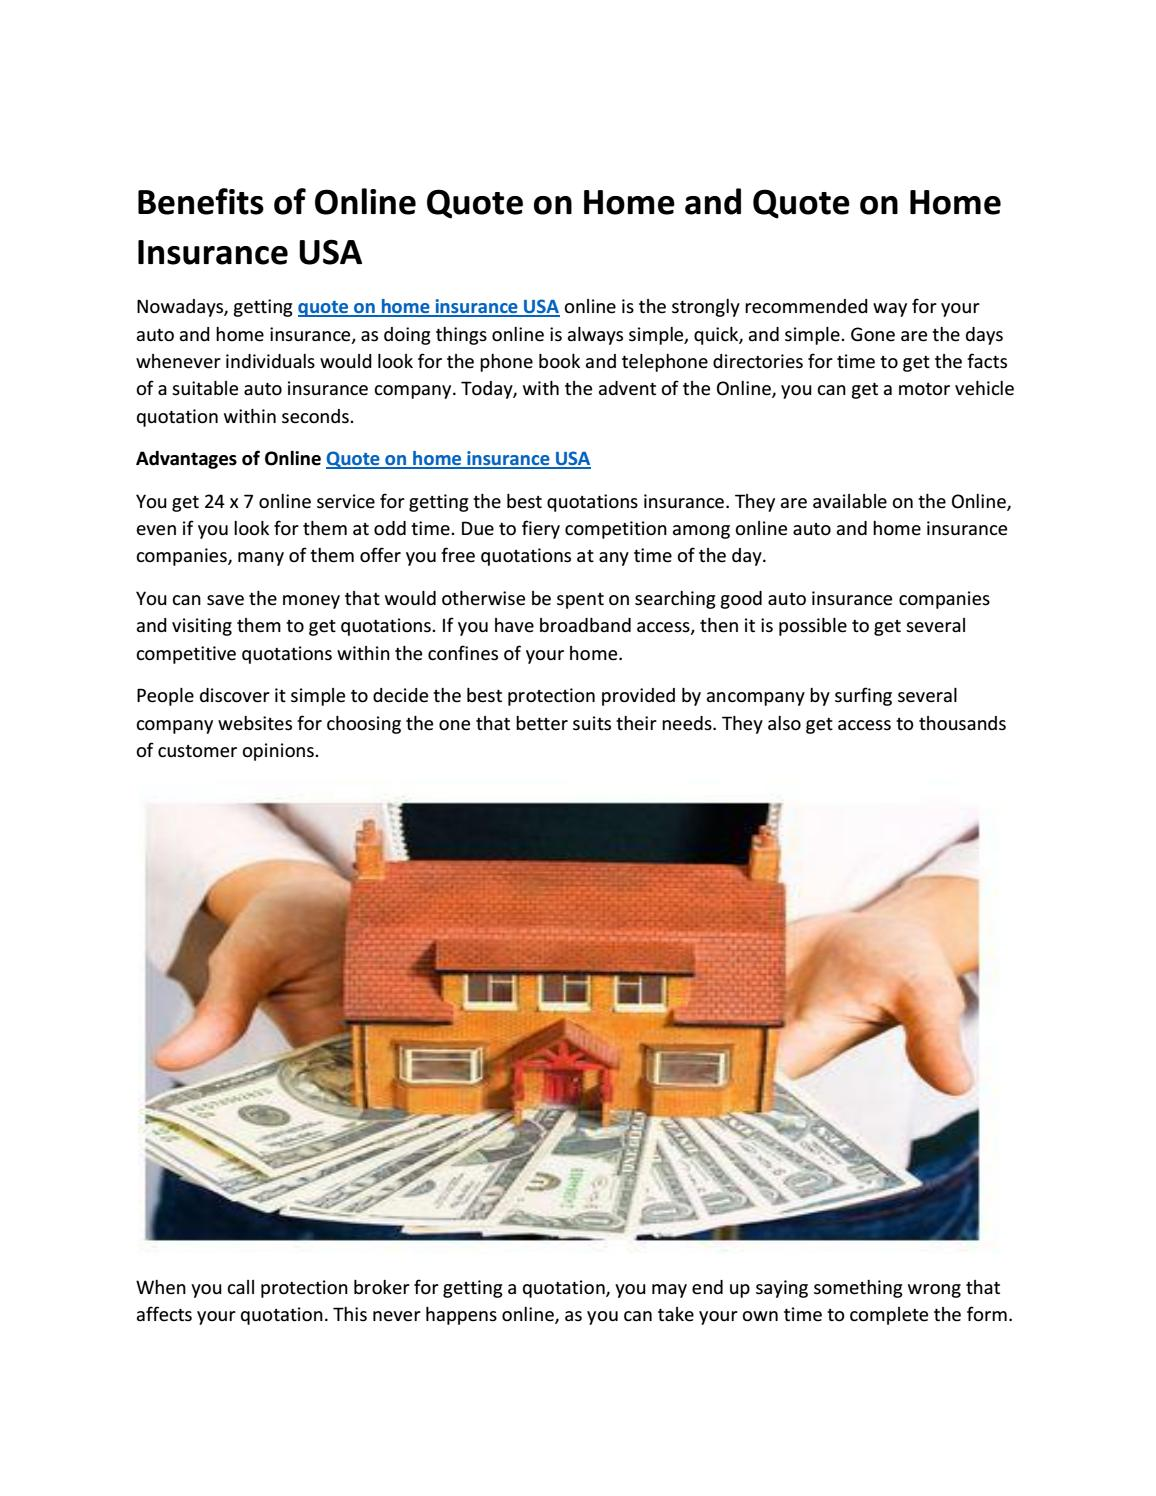 Quote On Home Insurance Usa By Fleetplus Issuu